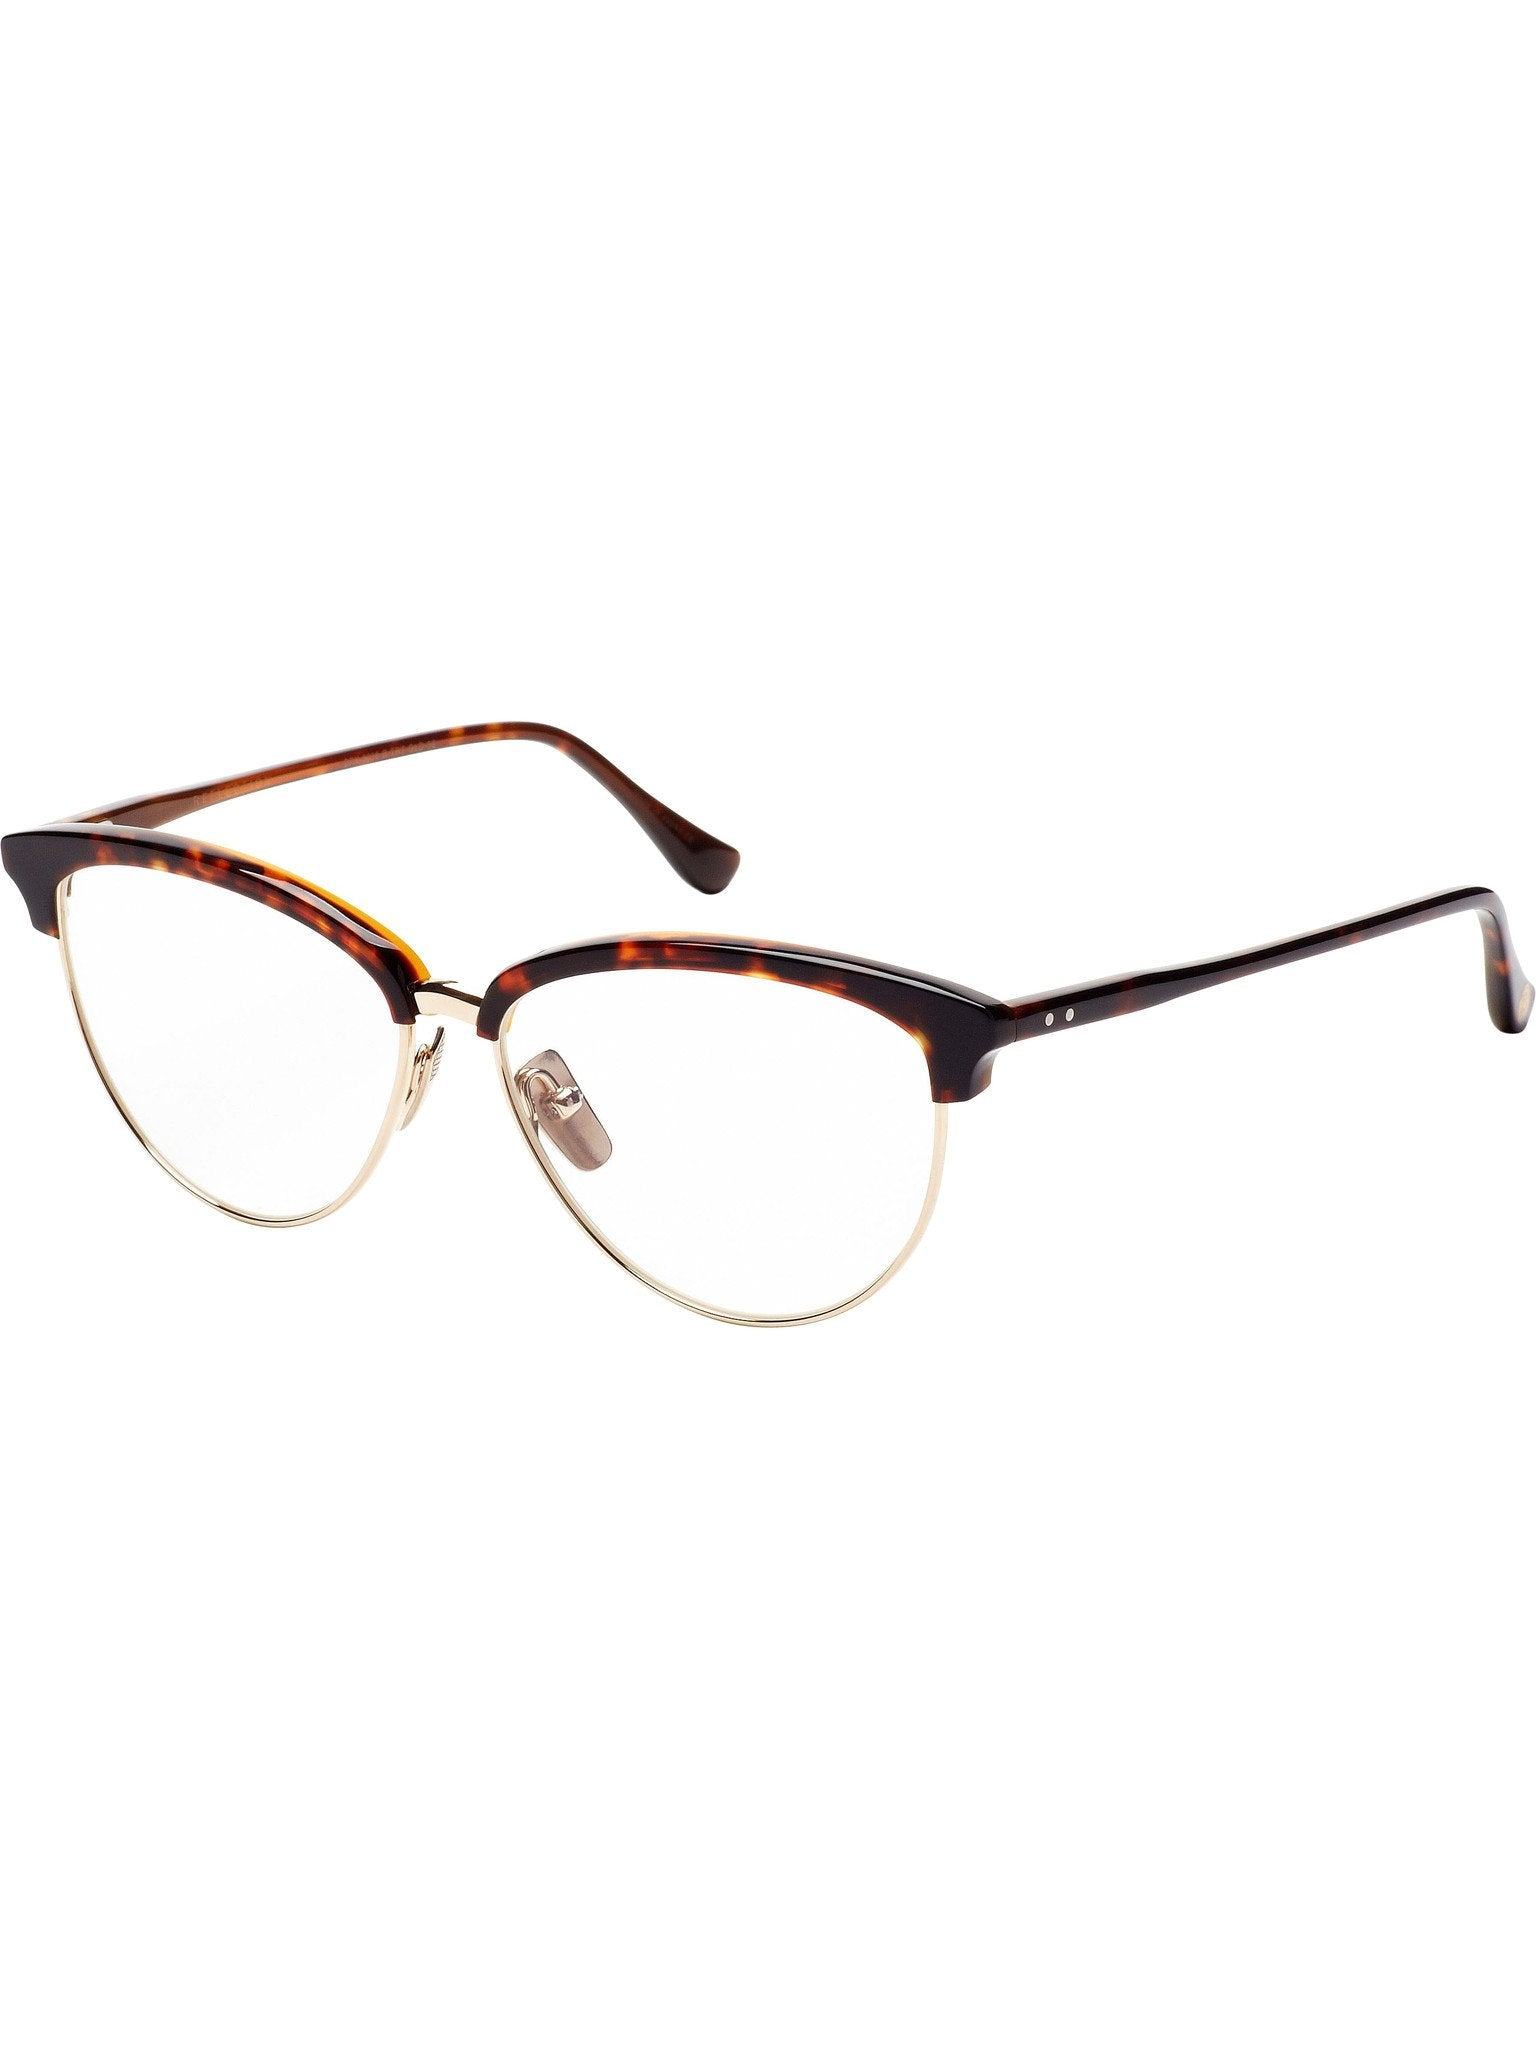 Optical Frame - Dita Reflection DRX-3036-B Glasses